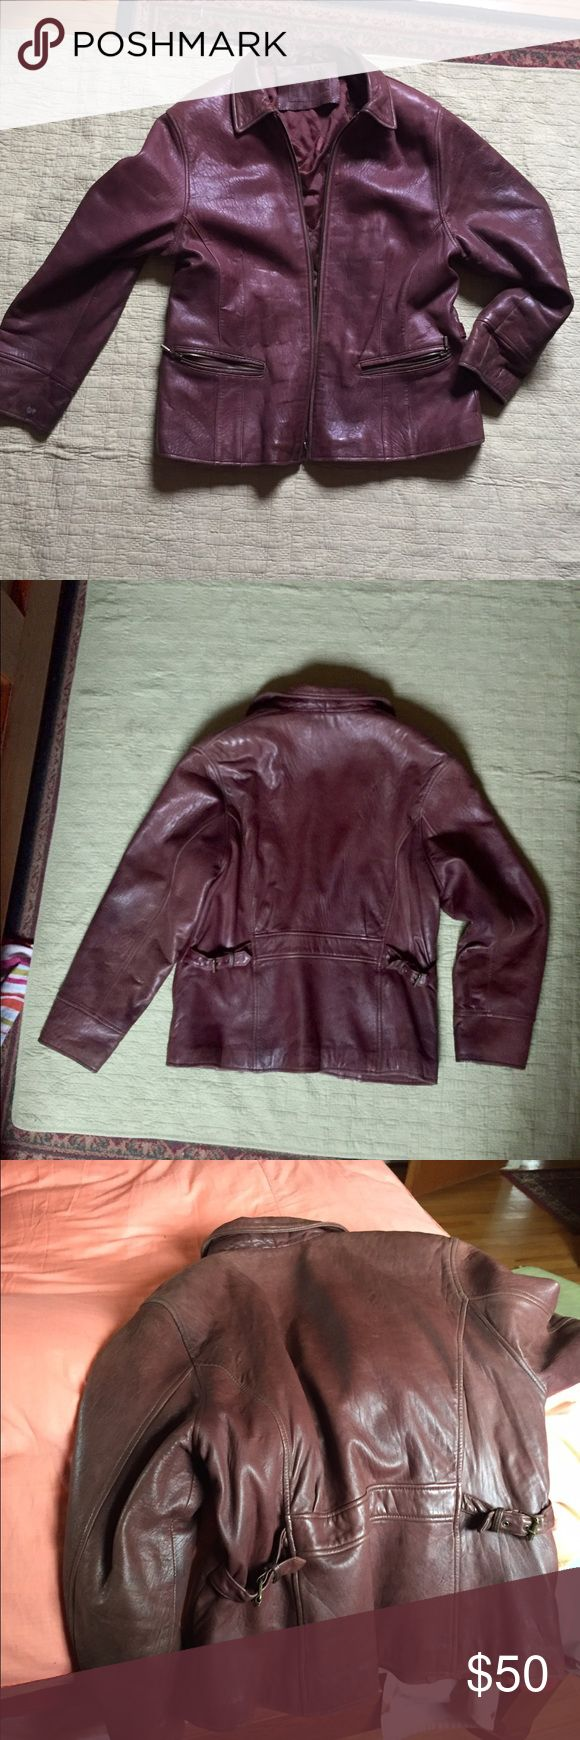 Men's Leather Coat 100% Genuine Leather Jacket ... this is a really awesome men's leather coat, soft leather very comfortable... Brown, size L measurements 23 inches chest 27 inches from back of neck to bottom of coat 24 inches from shoulder to hand Jackets & Coats Bomber & Varsity